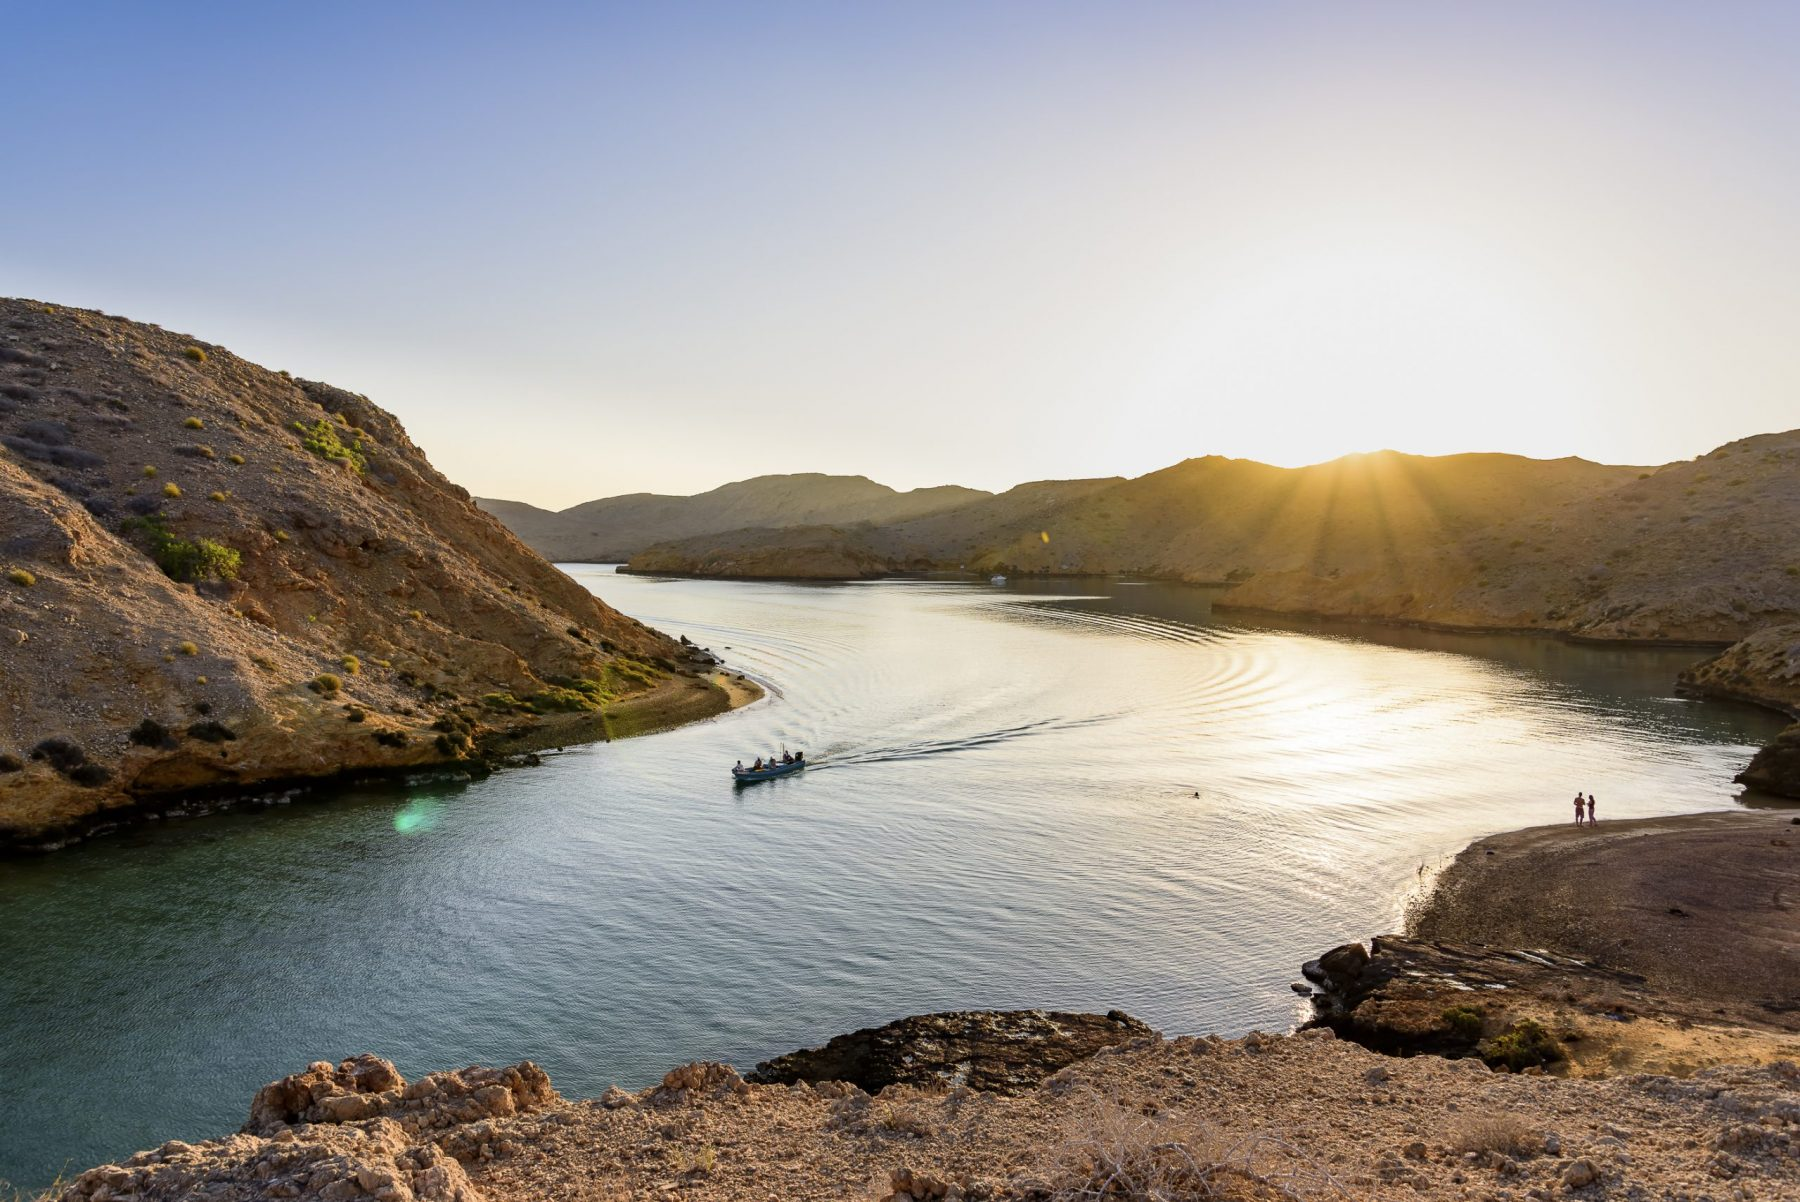 Sunrise in the beautiful Fjord-like of Bandar Khairan, Sultanate of Oman, Middle East, Arabian Peninsula